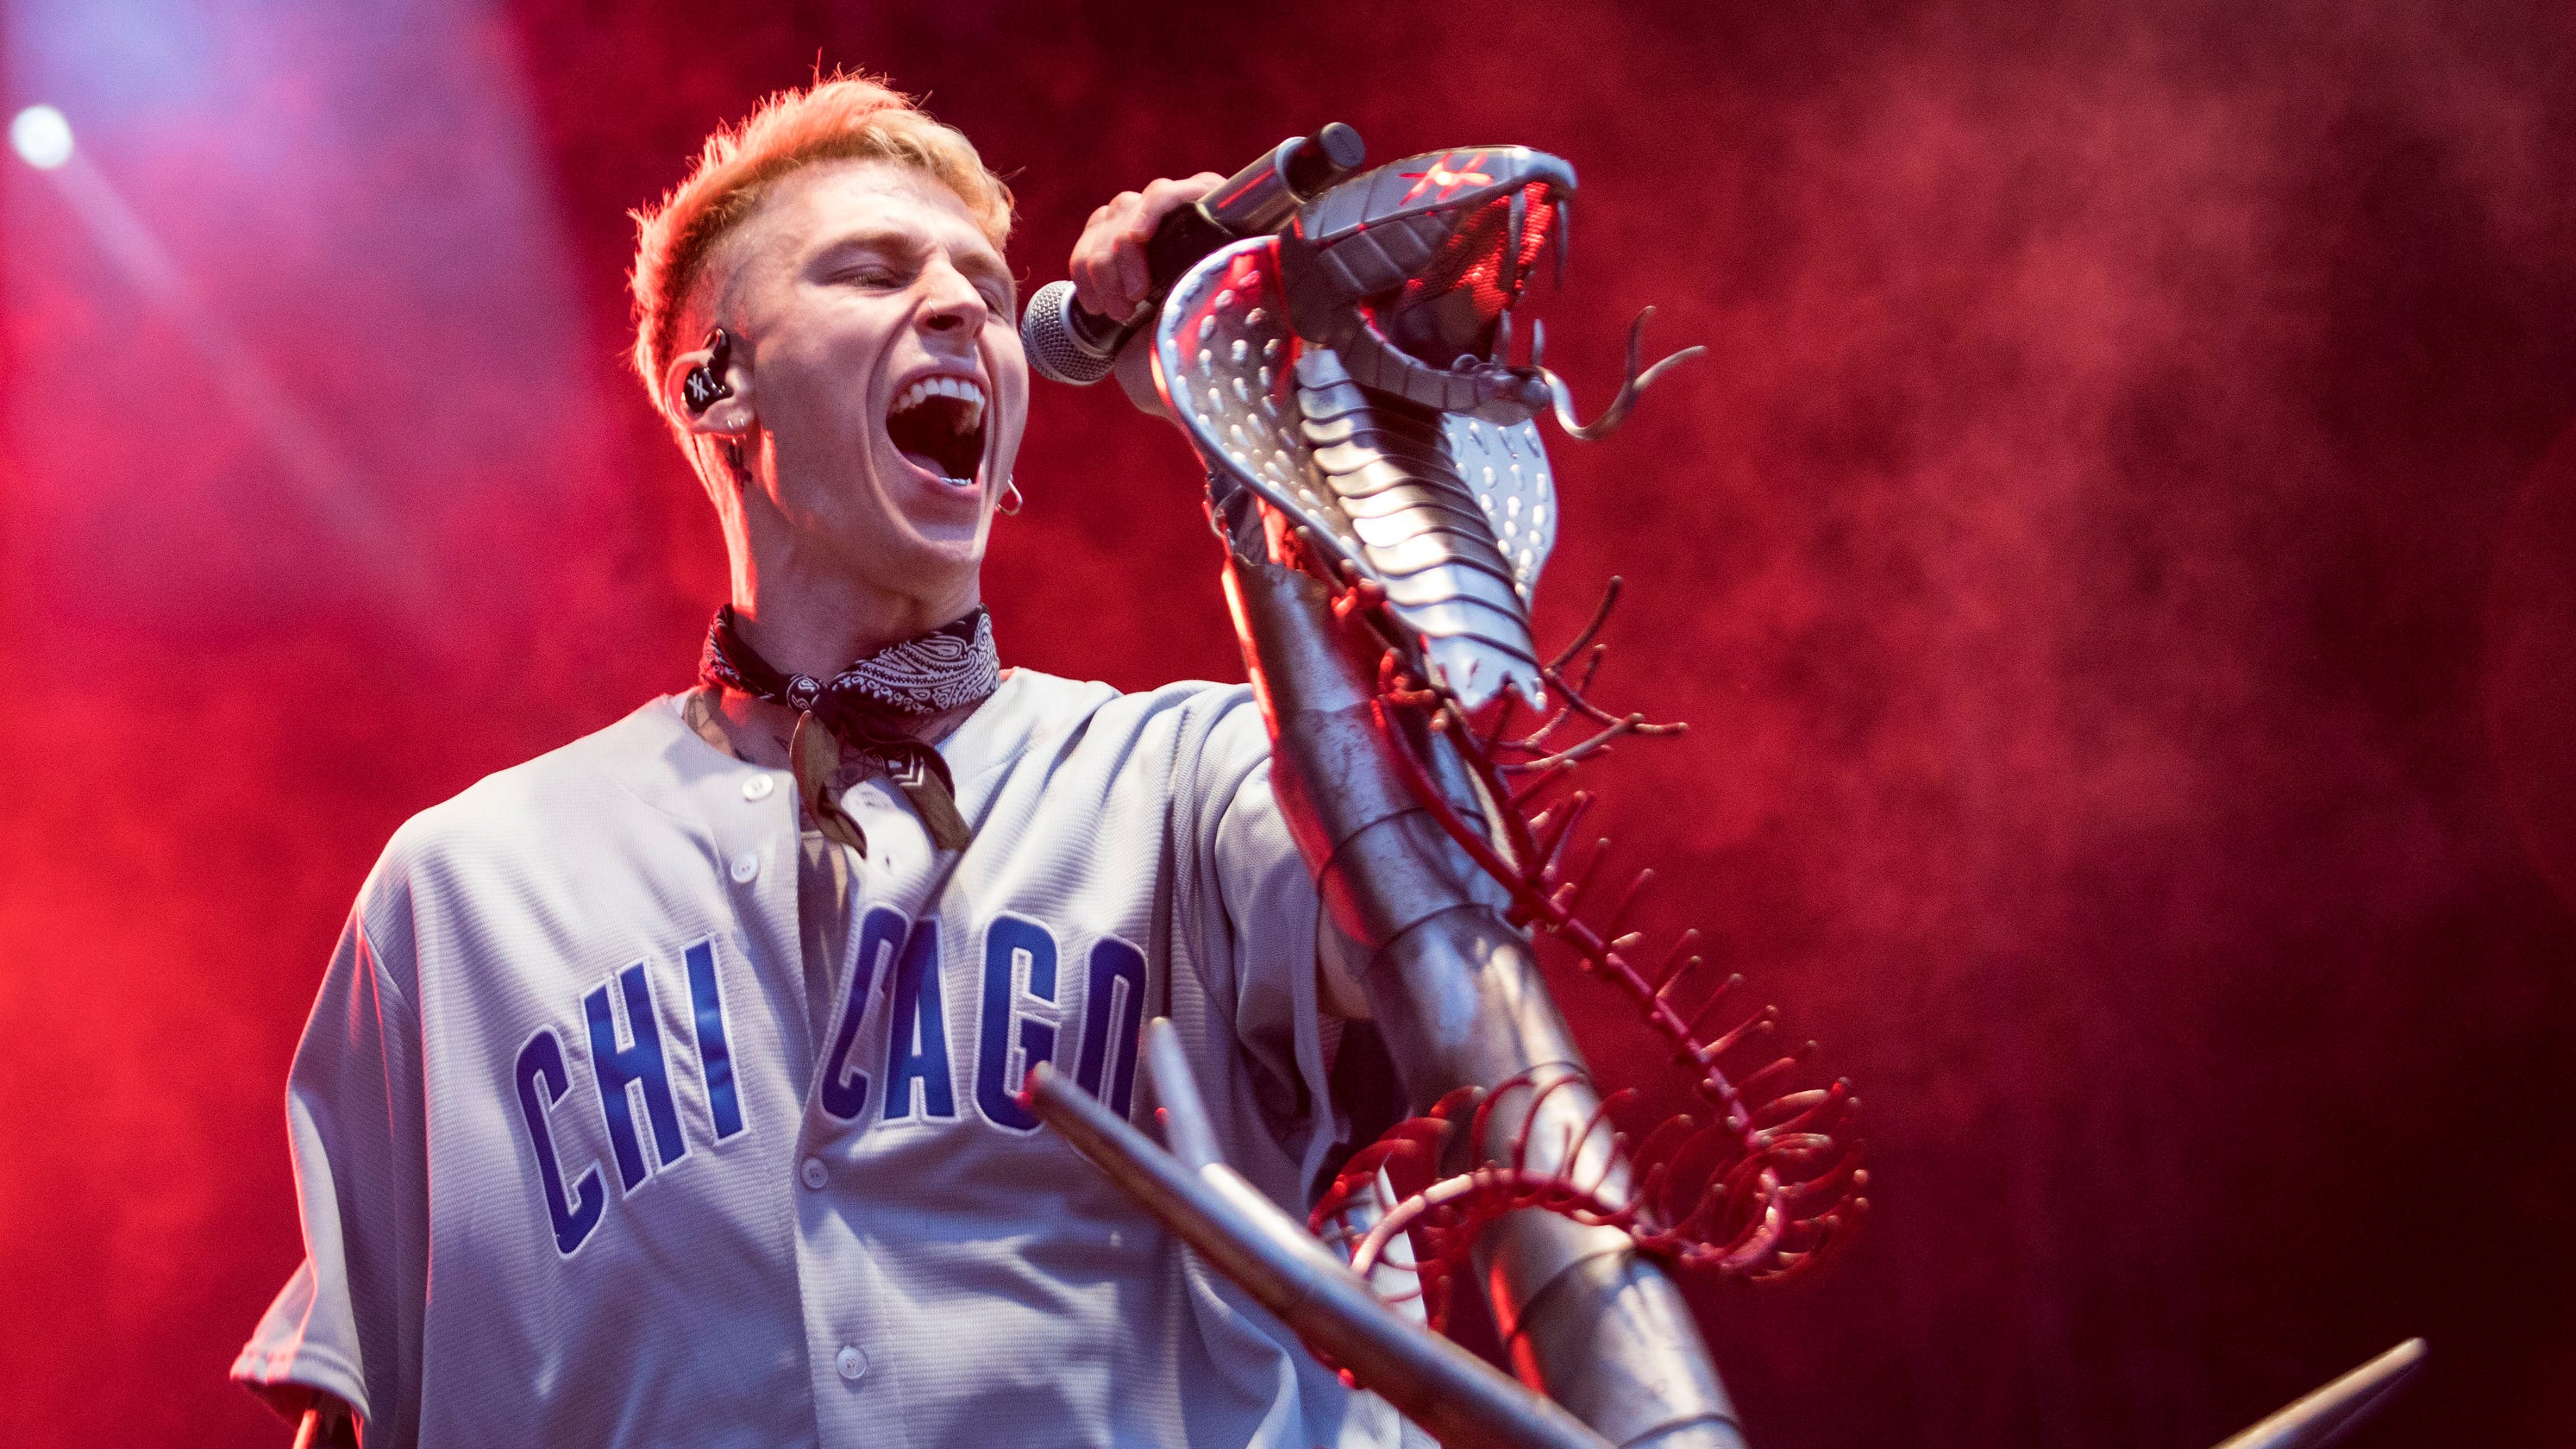 Machine Gun Kelly Stays Real In The Dirt My Mouth Is Too Honest